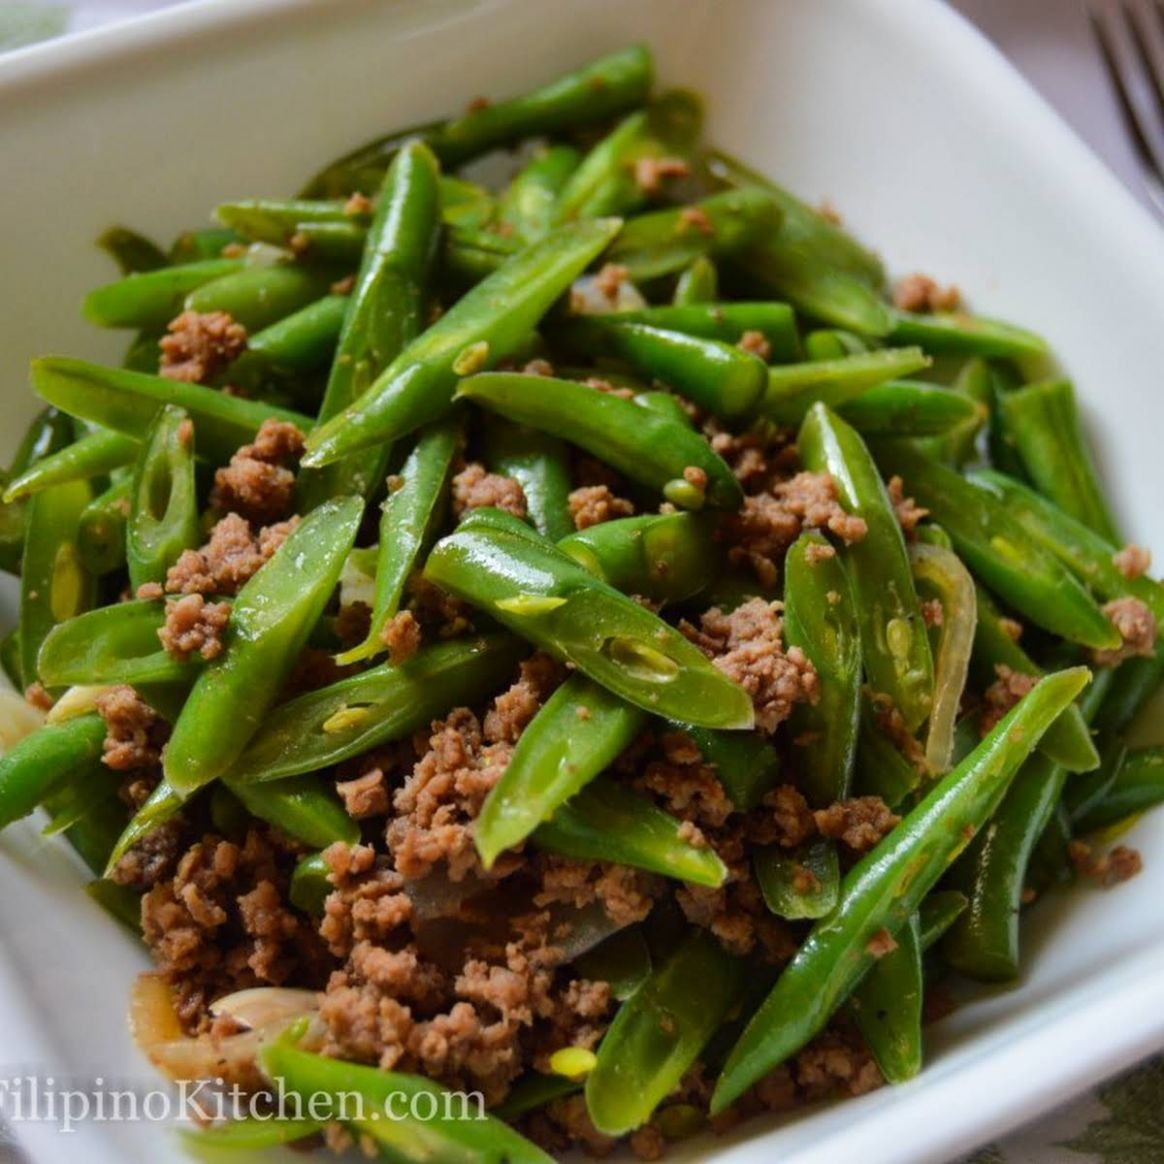 Sautéed Green Beans With Ground Beef (Filipino-style Ginisang Baguio Beans) - Vegetable Recipes Easy Pinoy